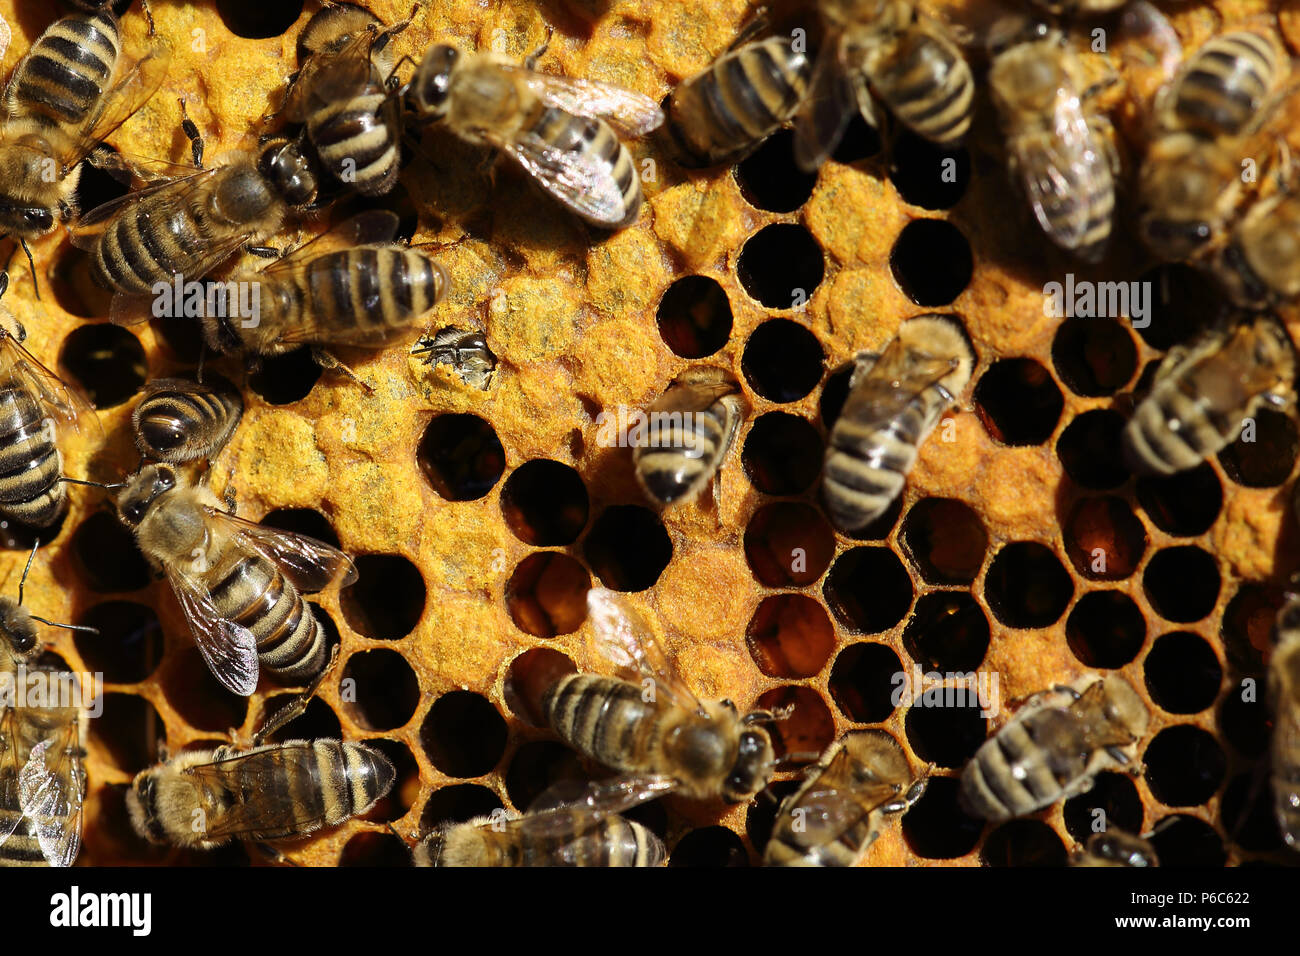 Berlin, Germany - honey bees on a honeycomb. In the middle of the left, a bee is slipping - Stock Image